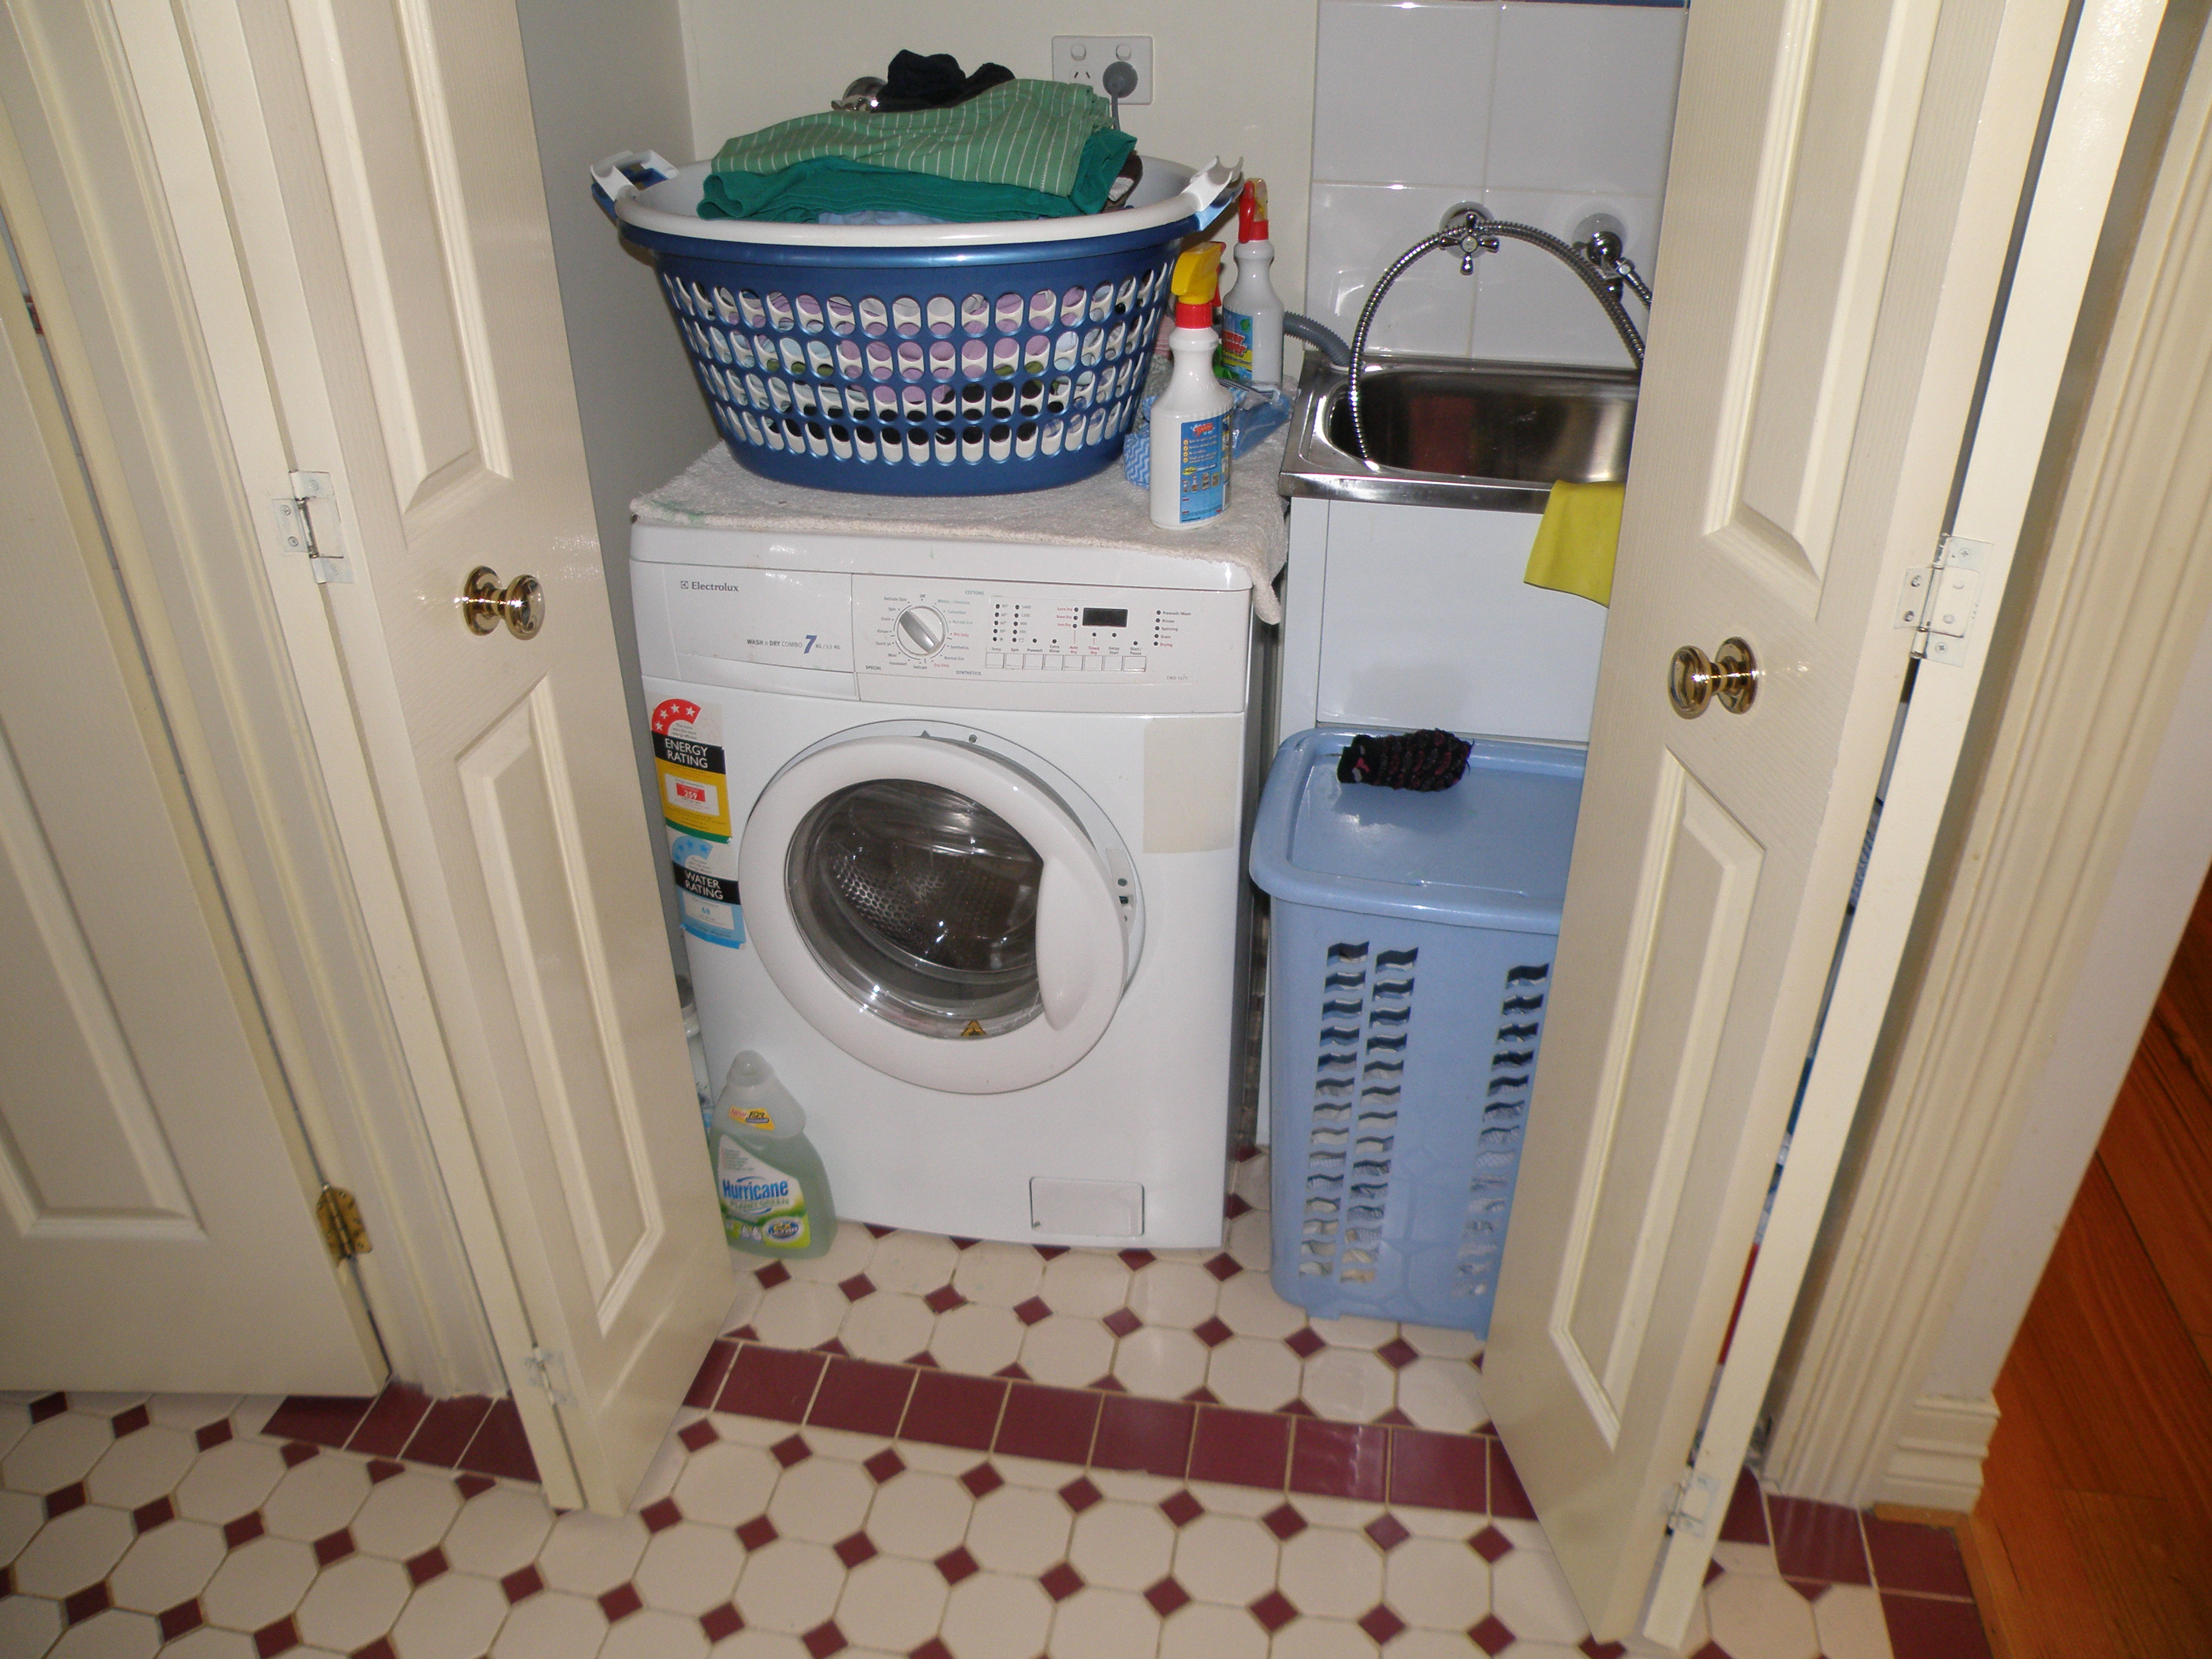 Ventless Clothes Dryers   Interesting Thing of the Day